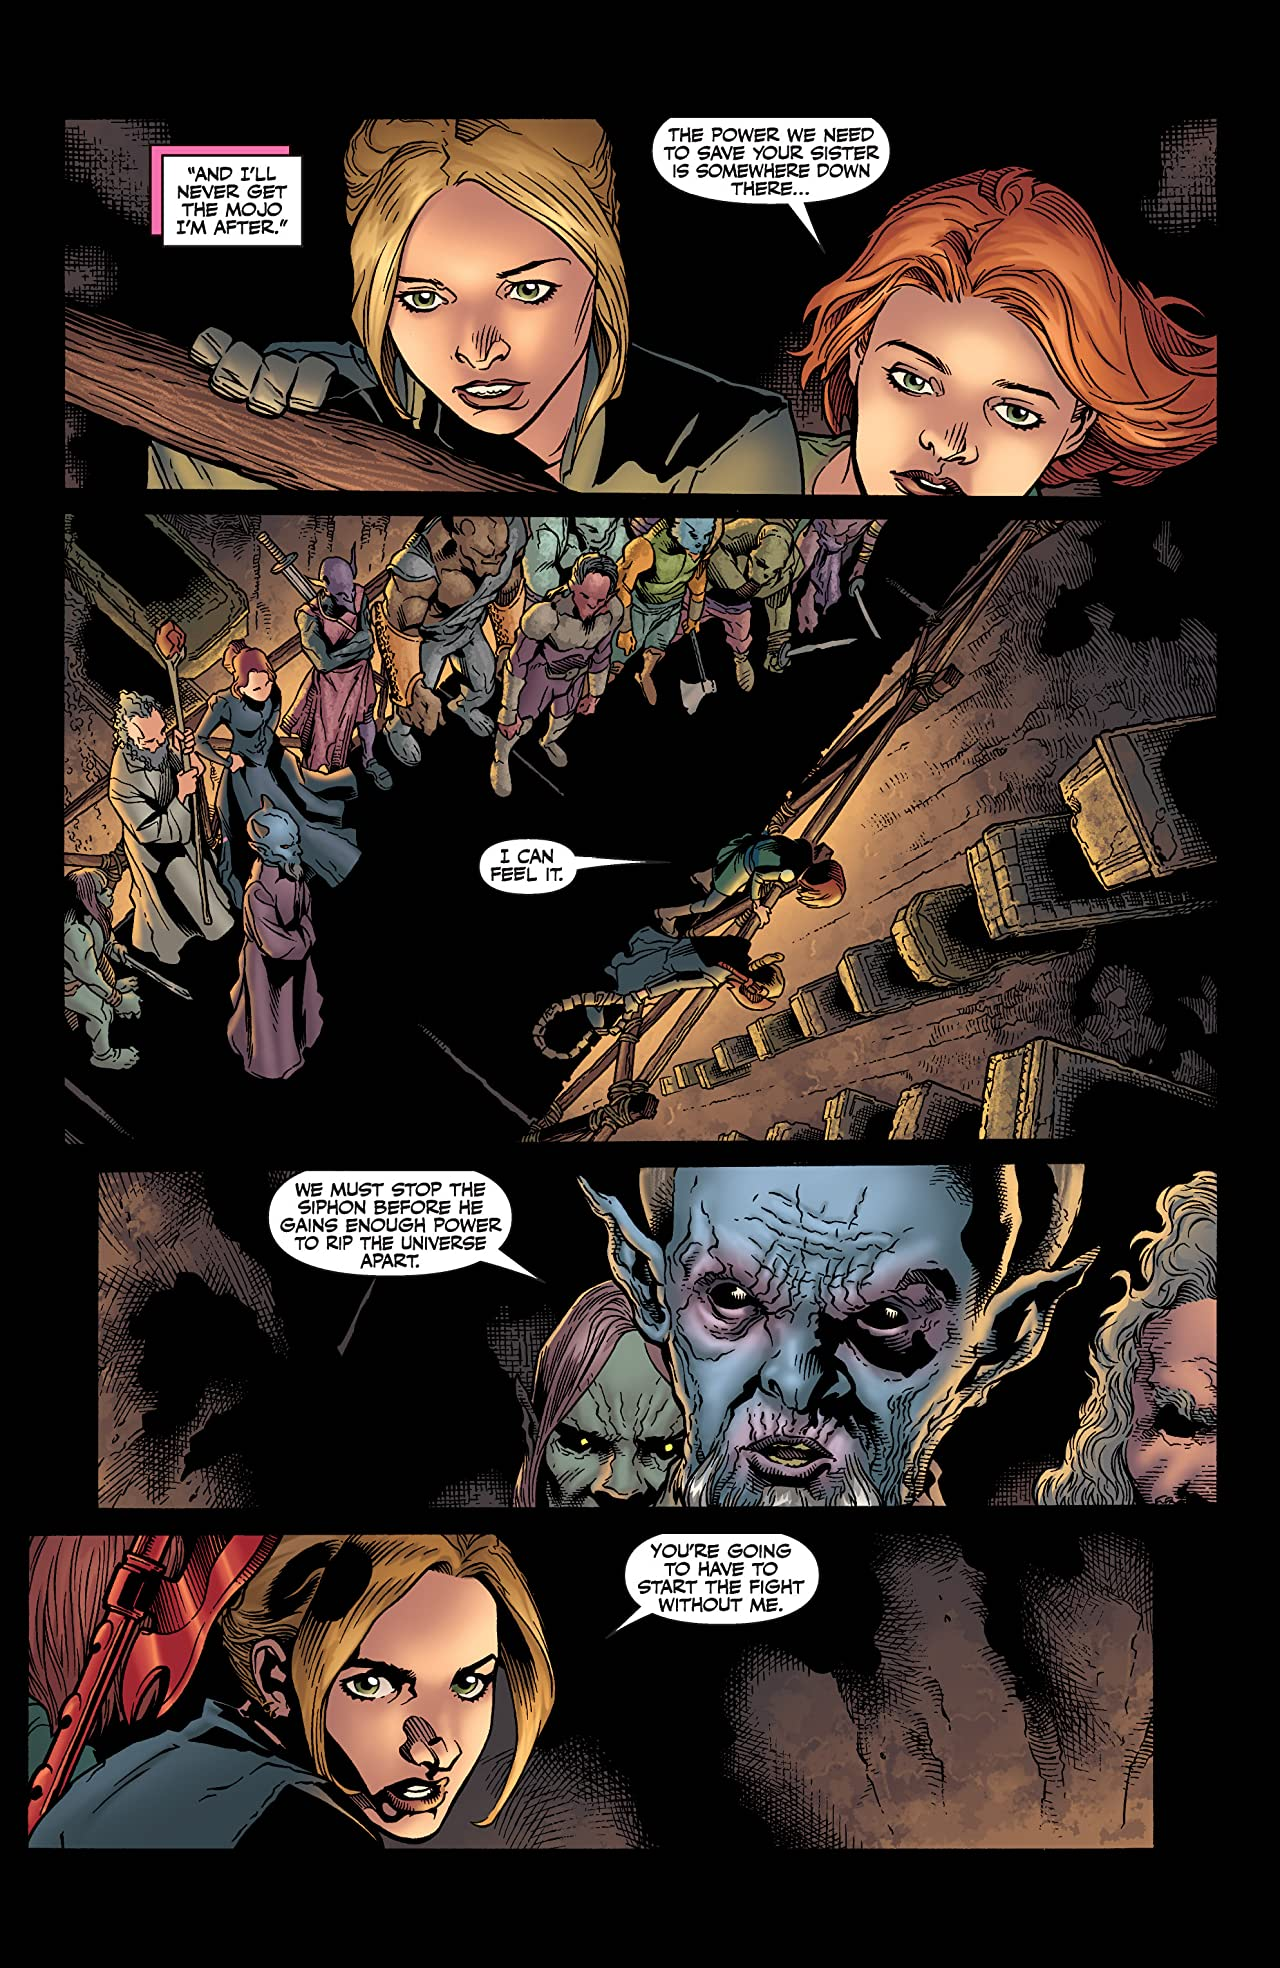 Buffy the Vampire Slayer: Season 9 #23